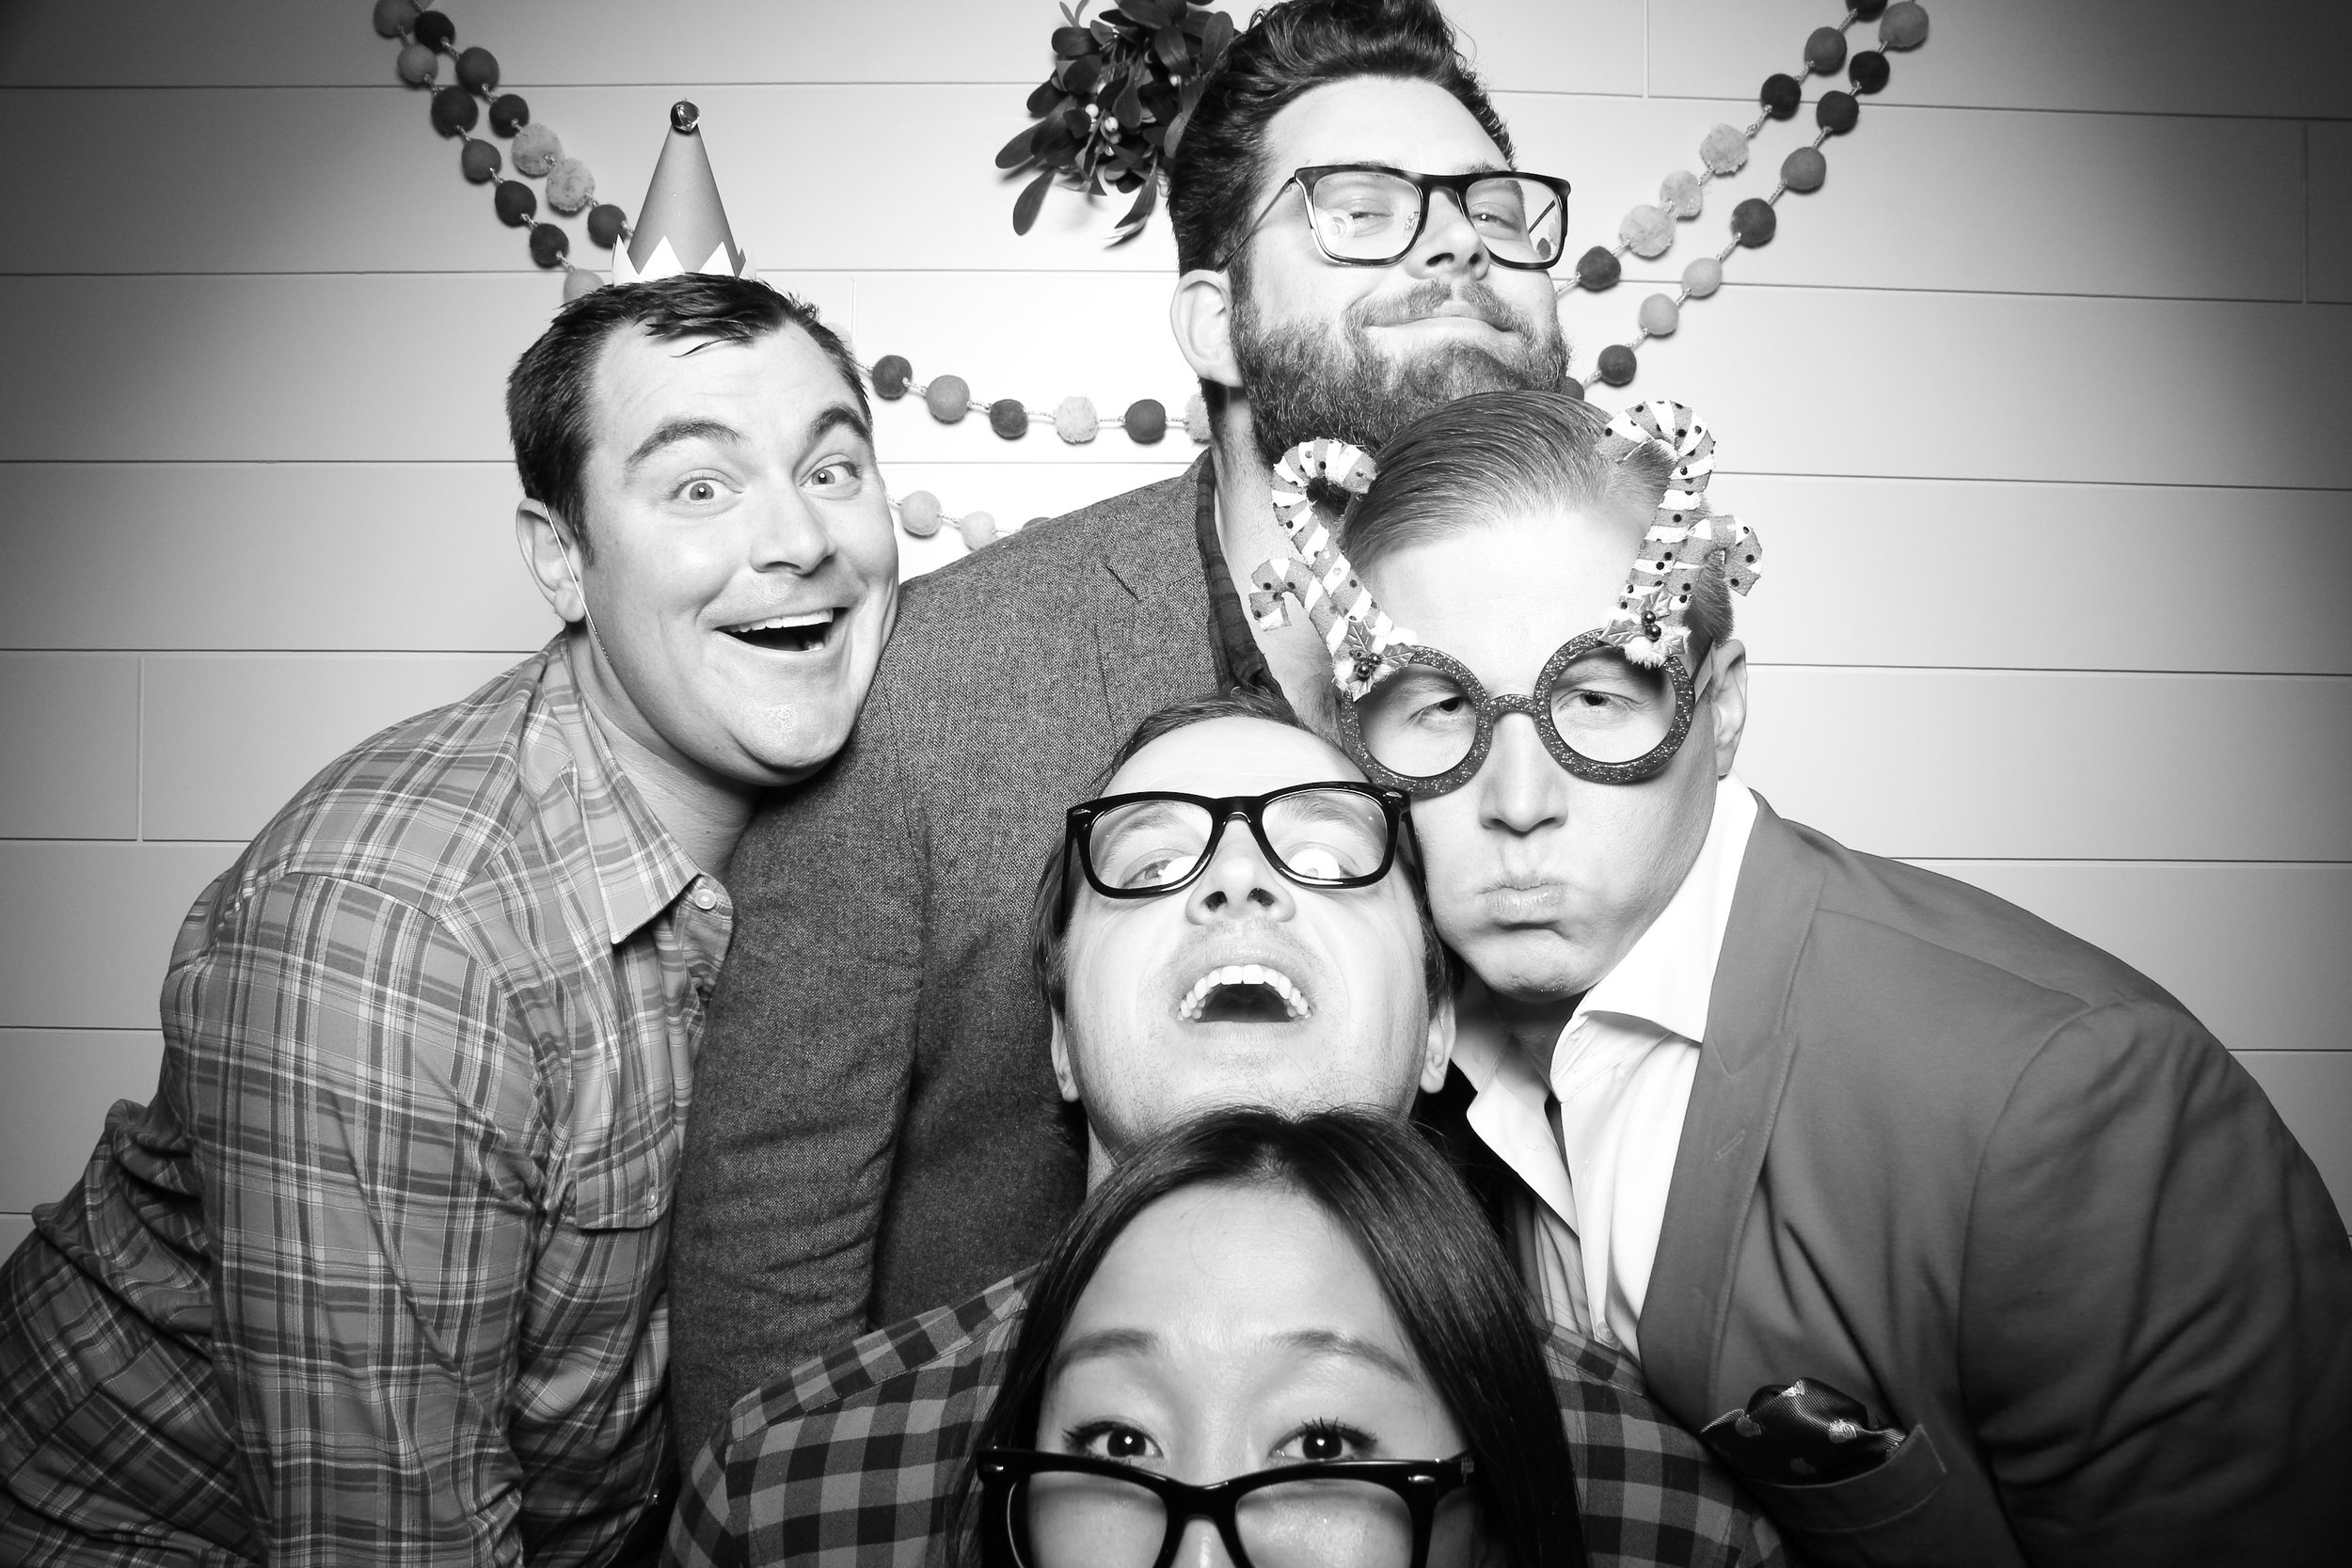 Chicago_Vintage_Photobooth_Christmas_Holiday_Party_16.jpg